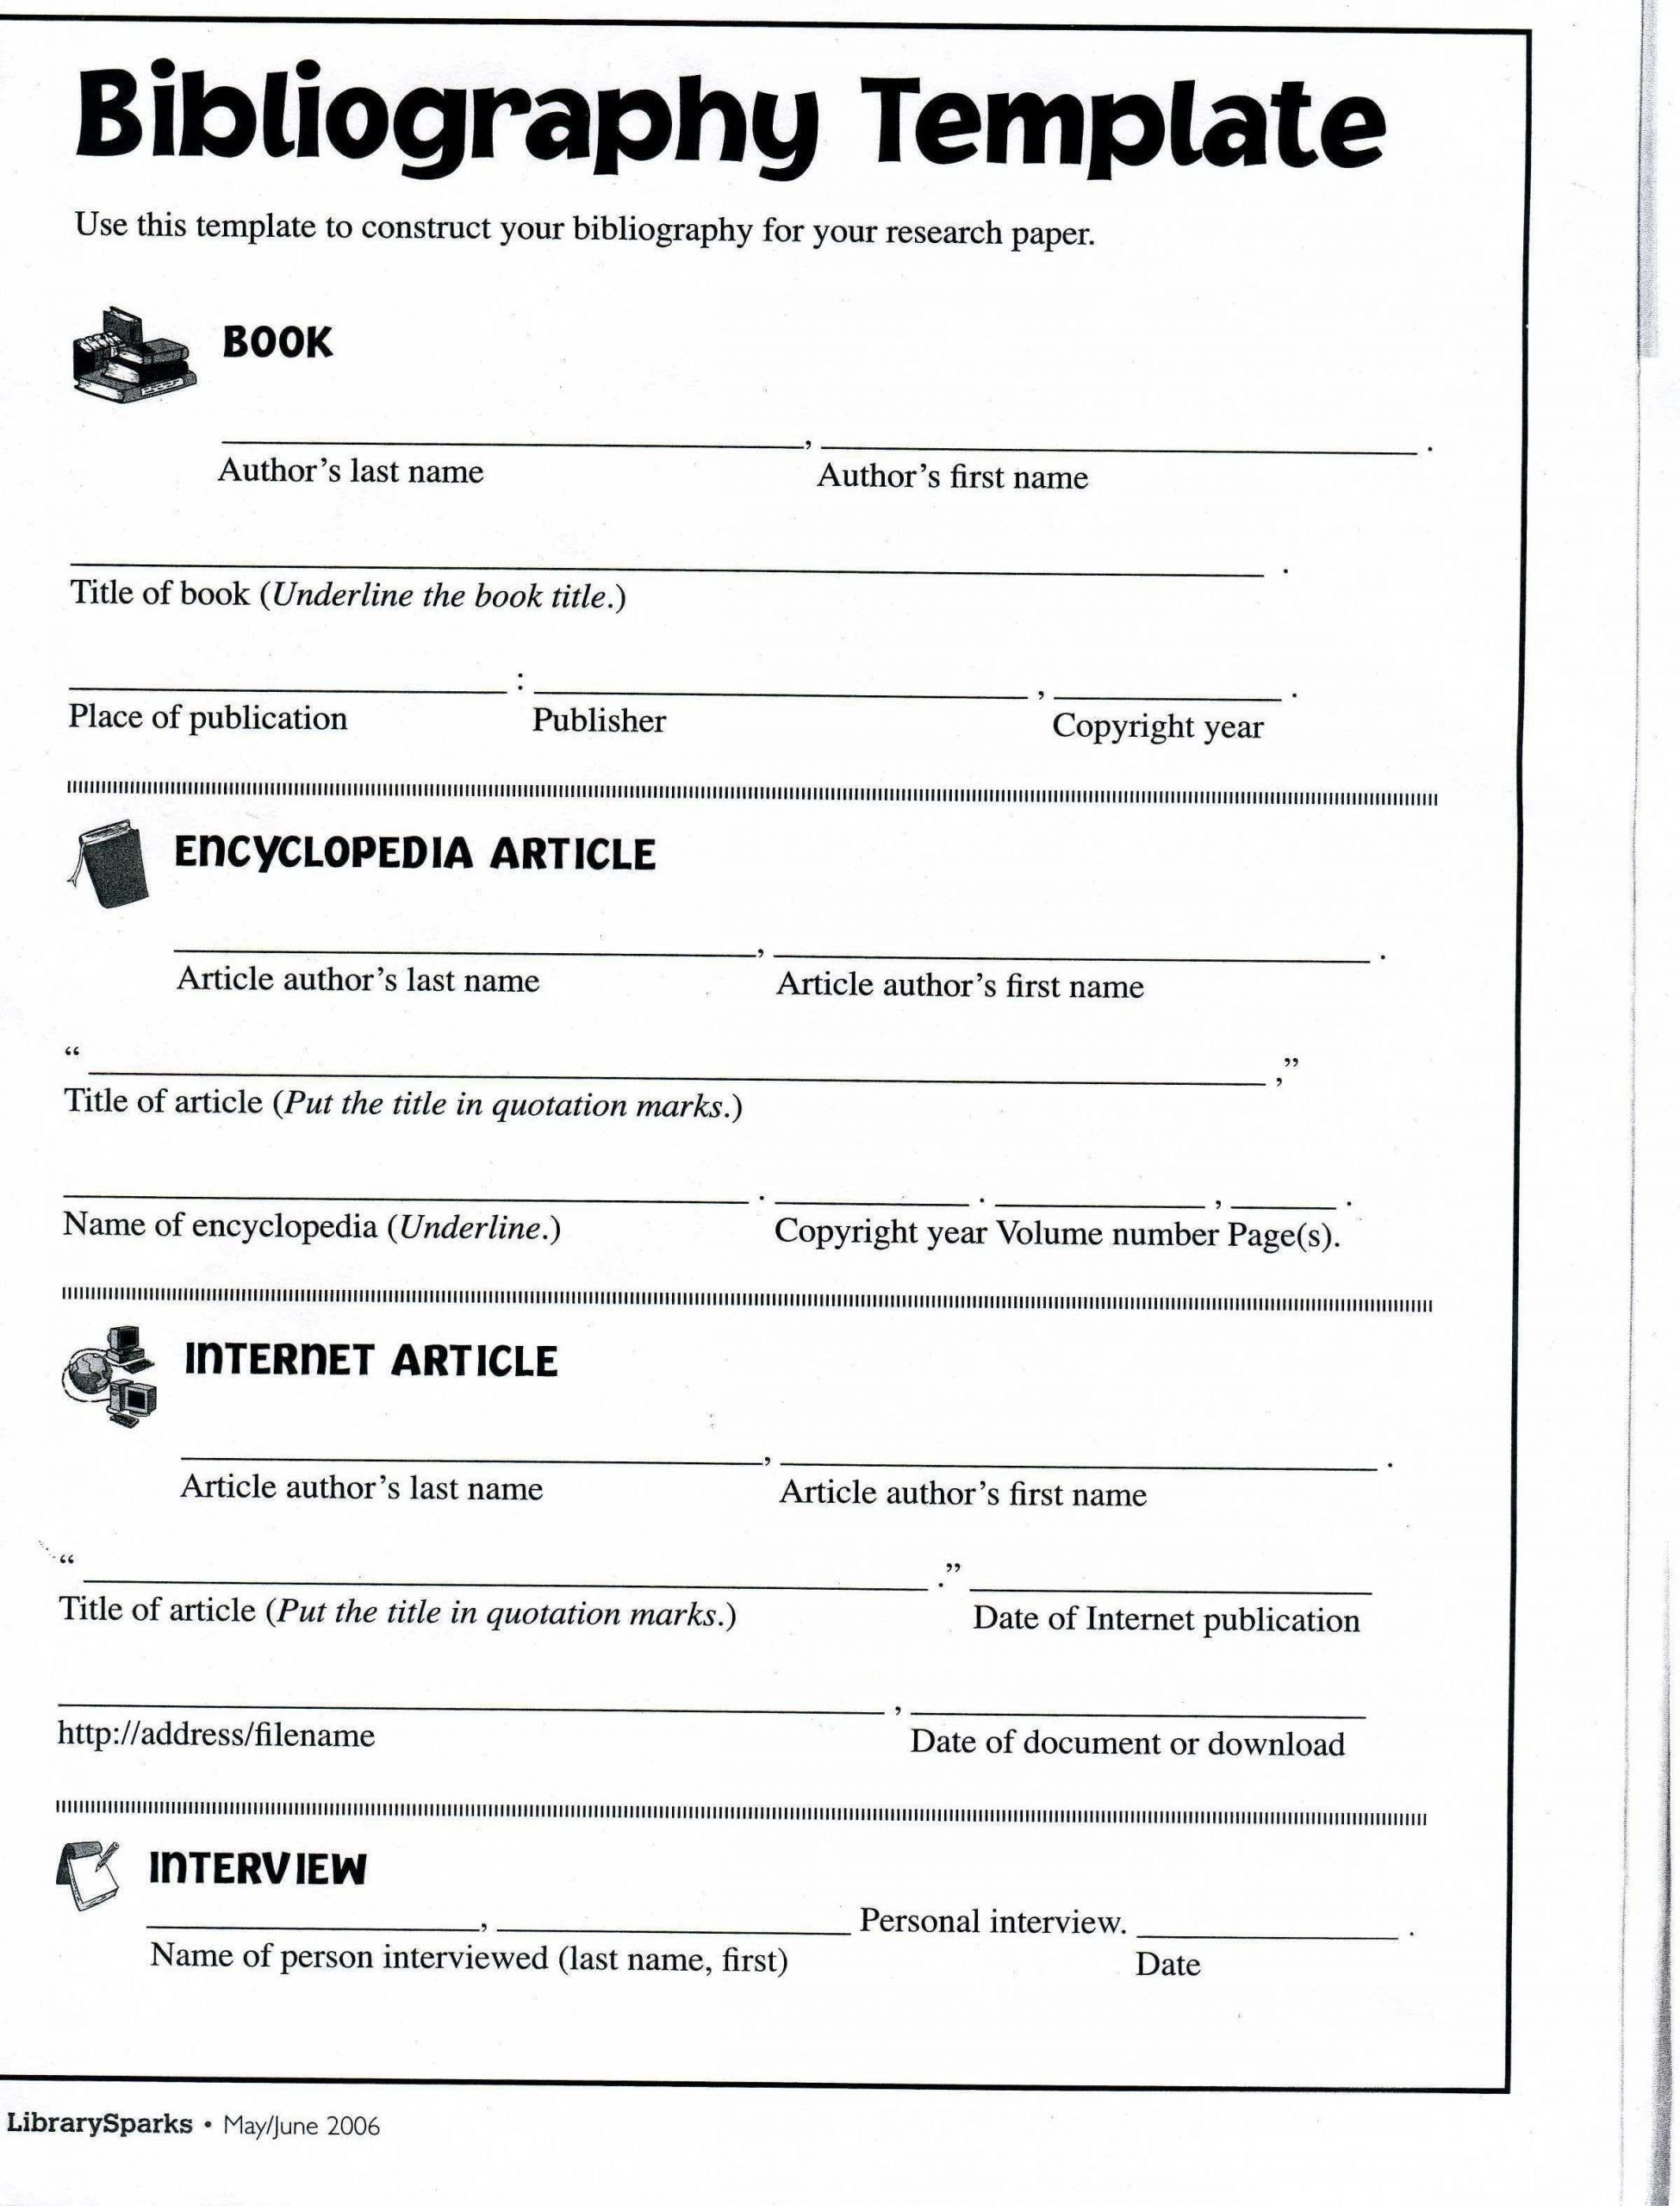 Citing sources Worksheet 5th Grade Citing sources Worksheet 5th Grade Image Result for